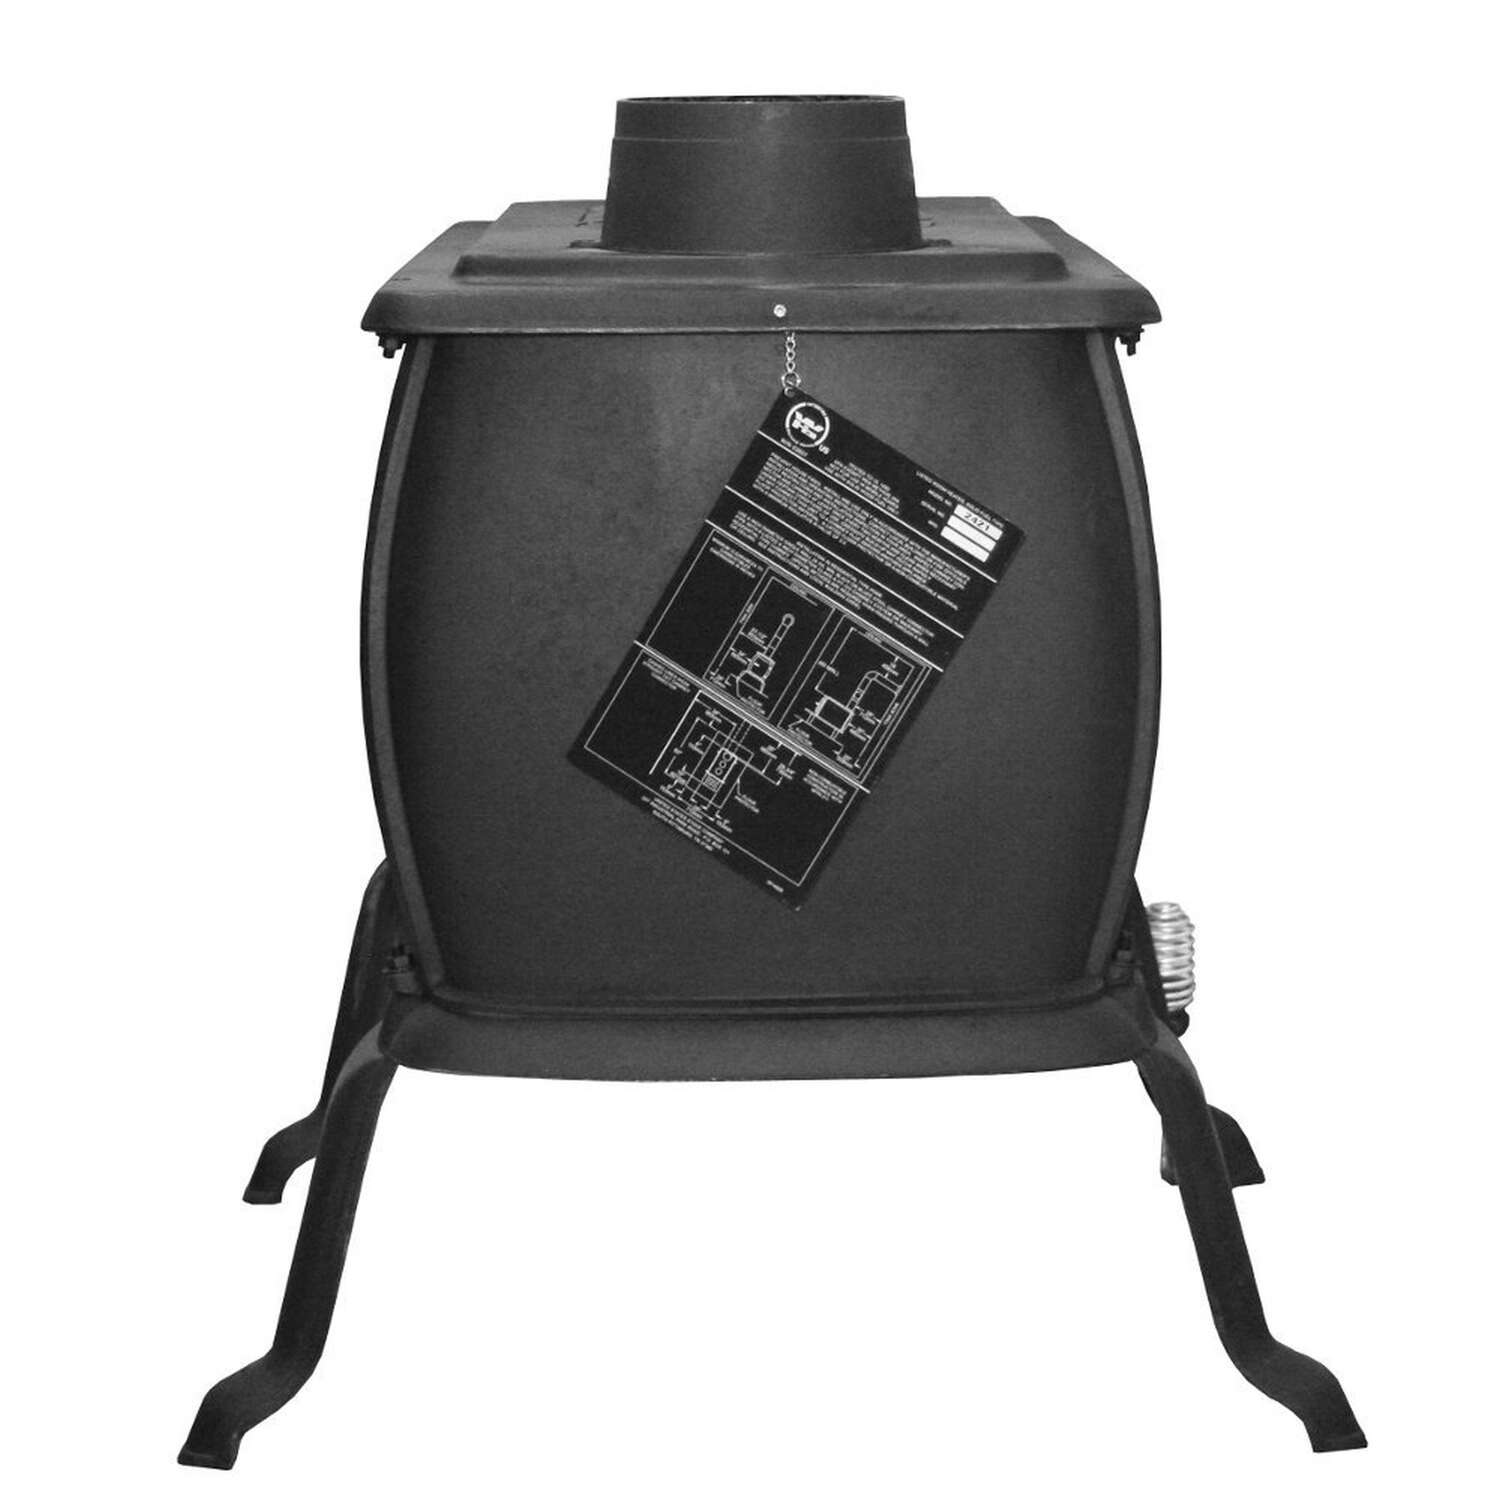 US Stove  94000 BTU 1600 sq. ft. Wood Stove